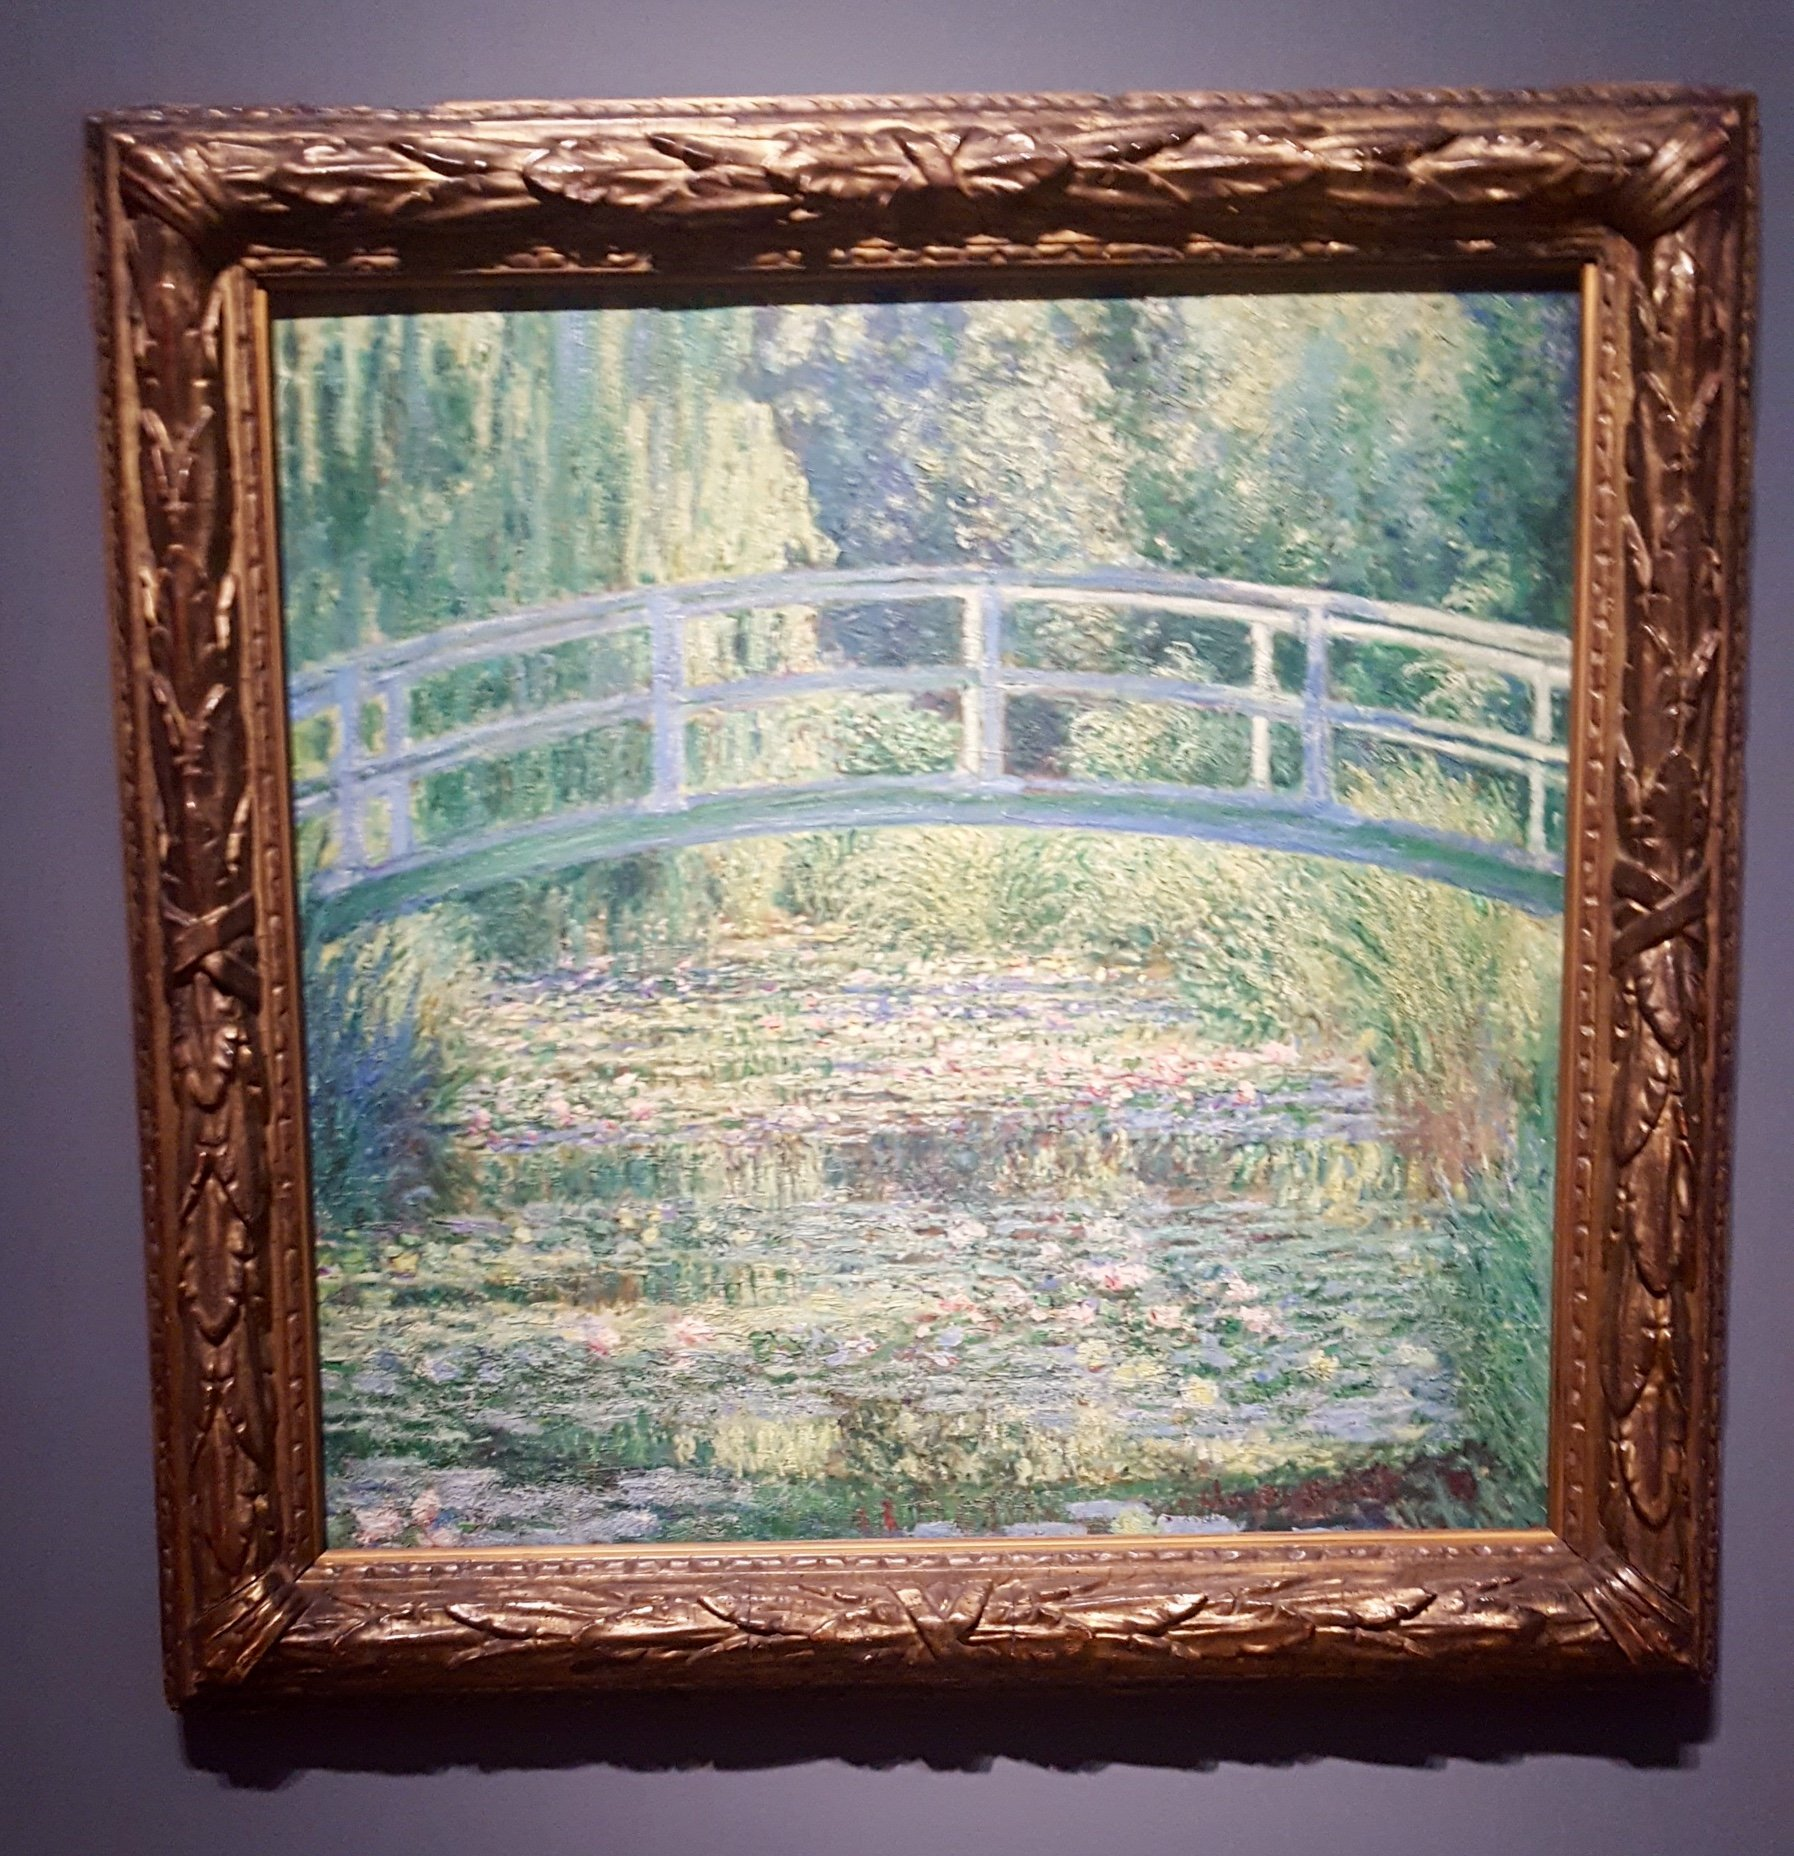 Claude Monet Water-Lily Pond National Gallery London